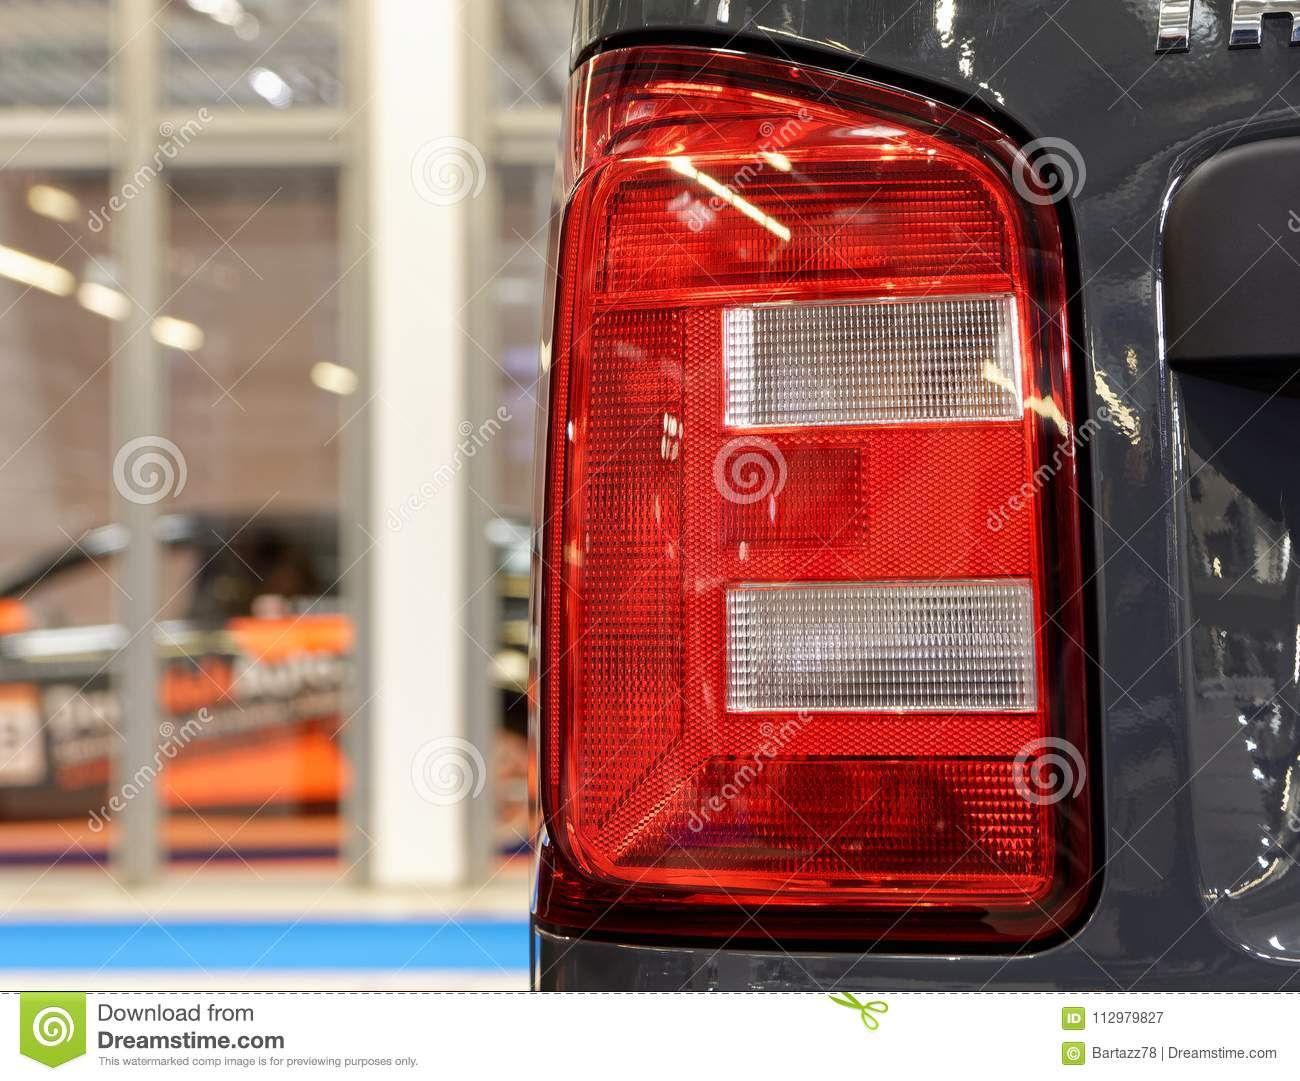 Modern and stylish red rear headlight